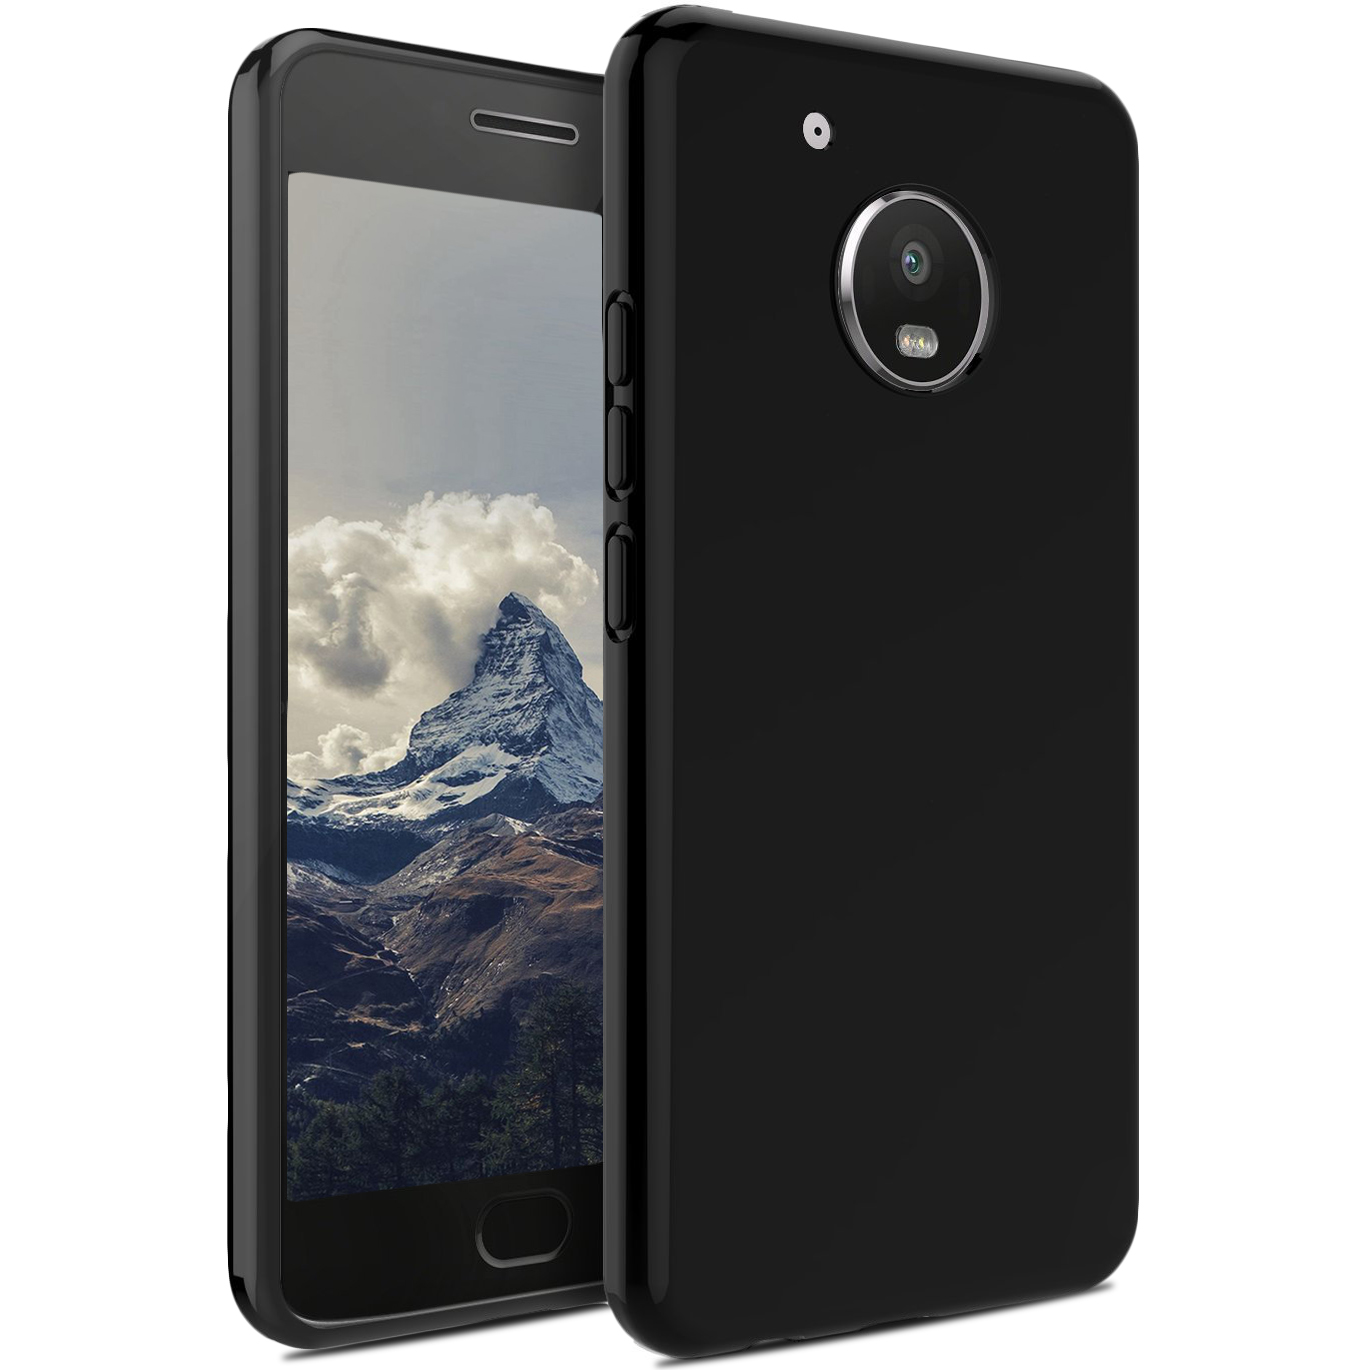 motorola china experience case answers Htc one vs moto x moto x case (cover) guide accessories guide moto x case this post will try to answer the question of moto x 2015 vs moto x 2014 to help you decide whether you should upgrade to moto x 2015 improved motorola migrate experience.